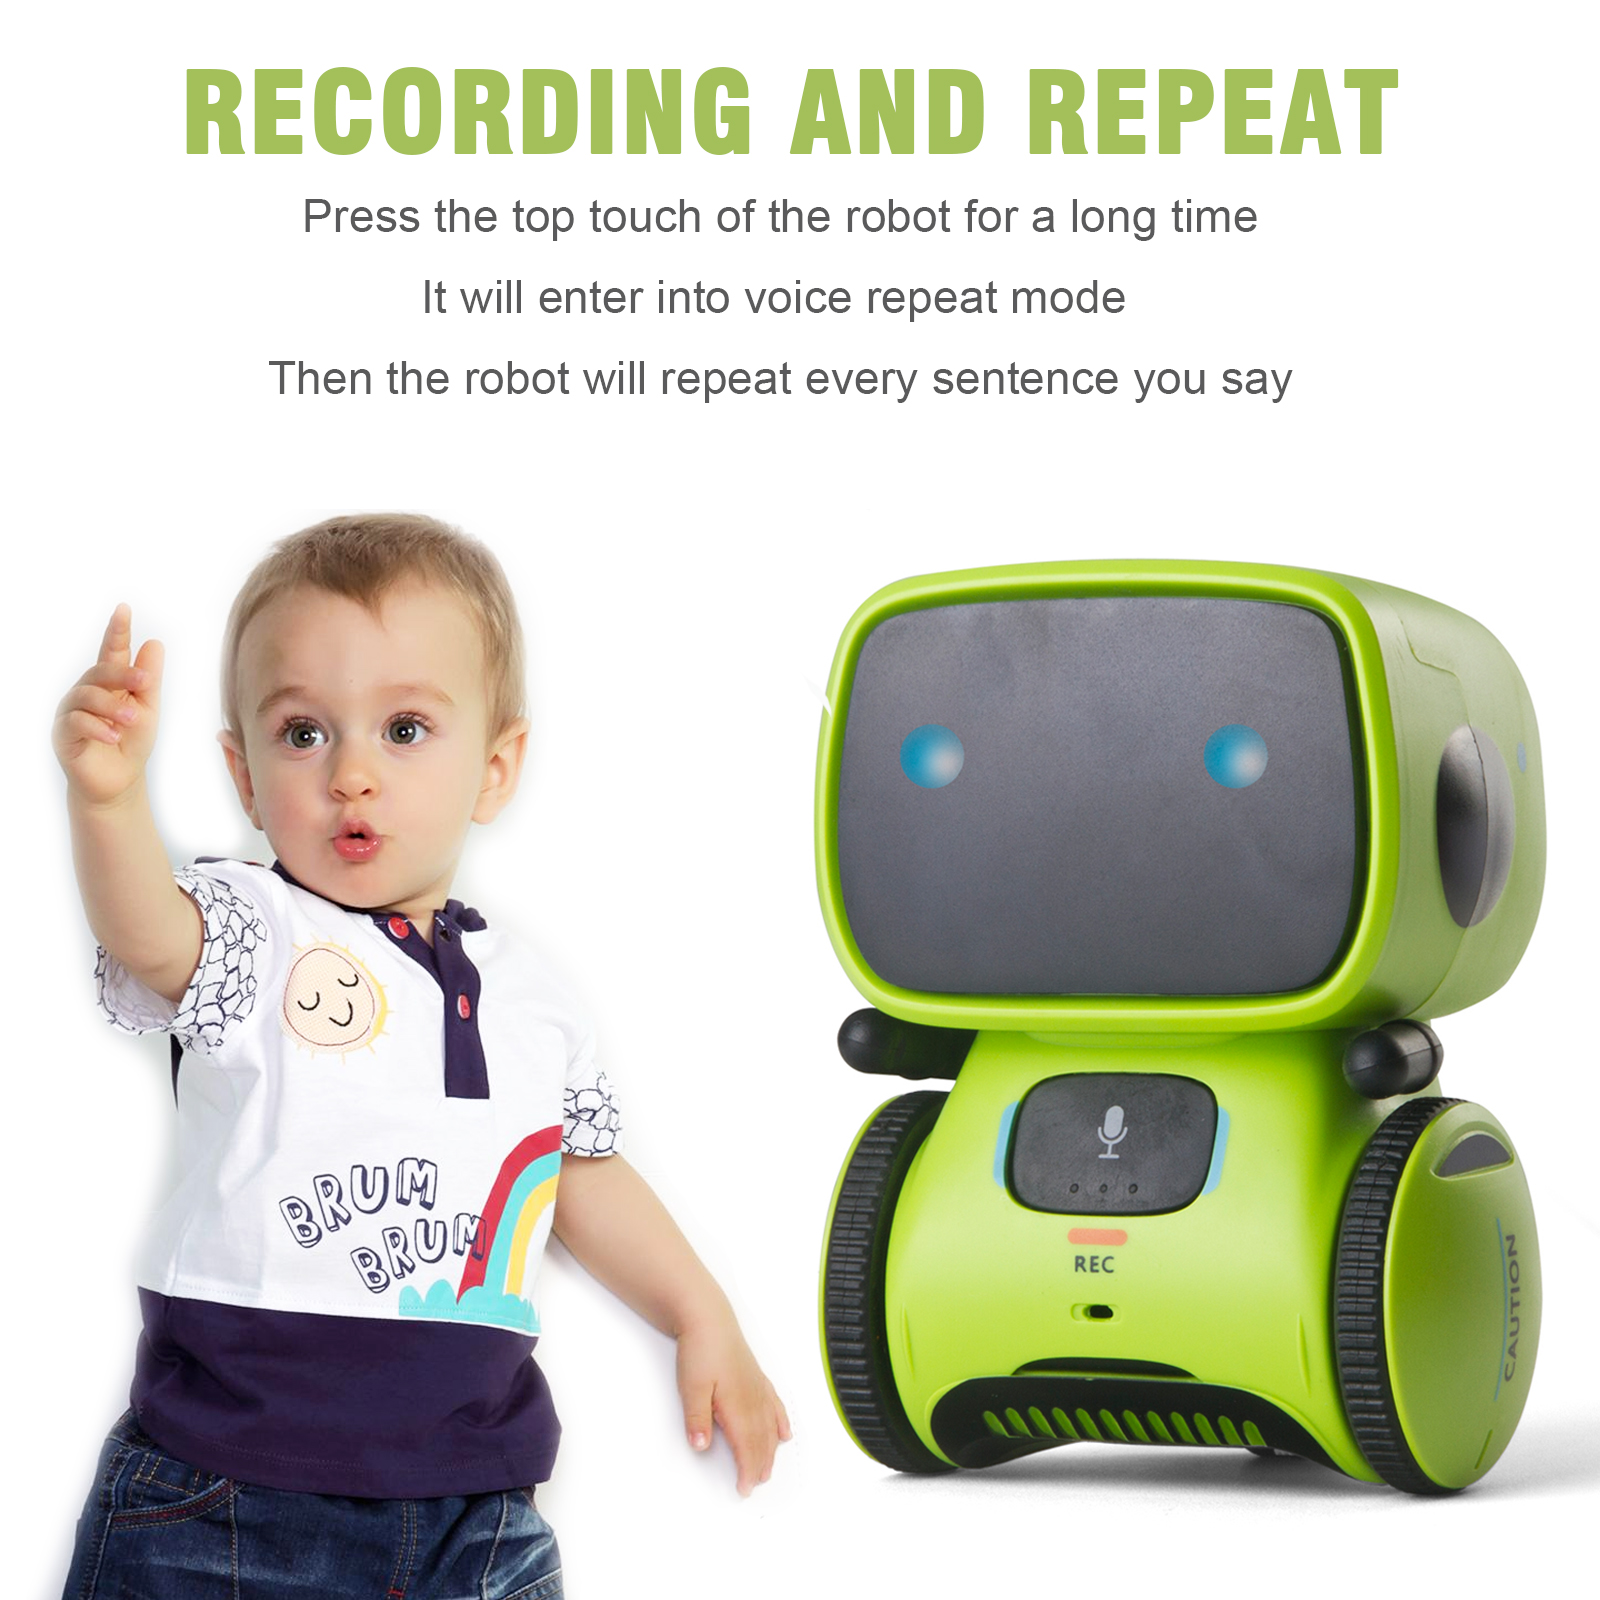 Voice Command Smart Robot Touch Control Programming Dance Interactive Robot Toy Cute Figure Robot for Kids Gift random color